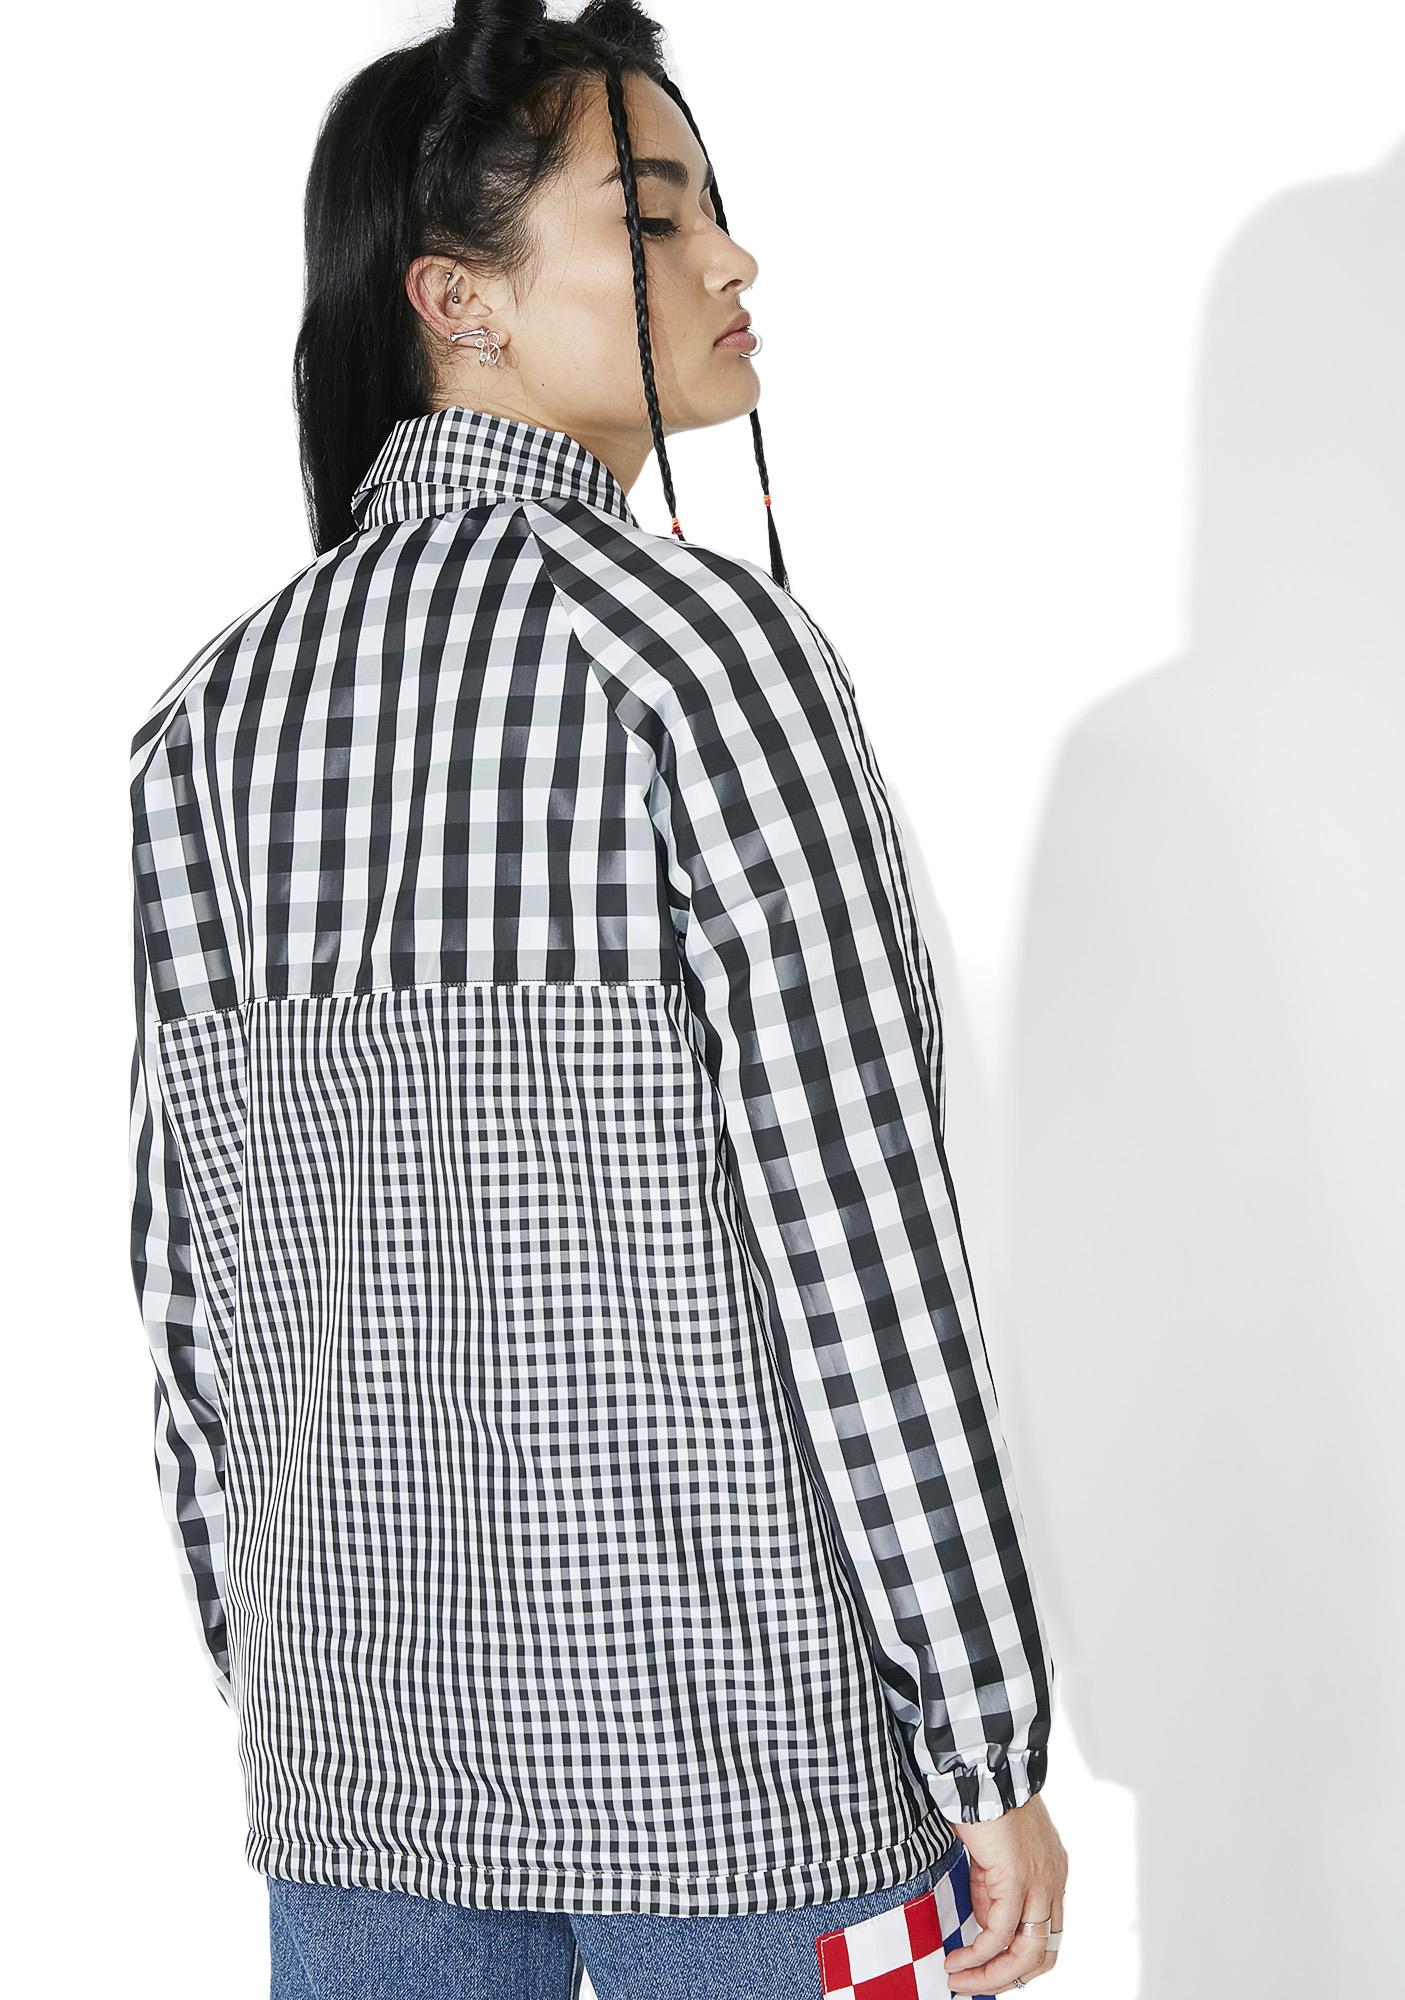 The Ragged Priest Shade Jacket